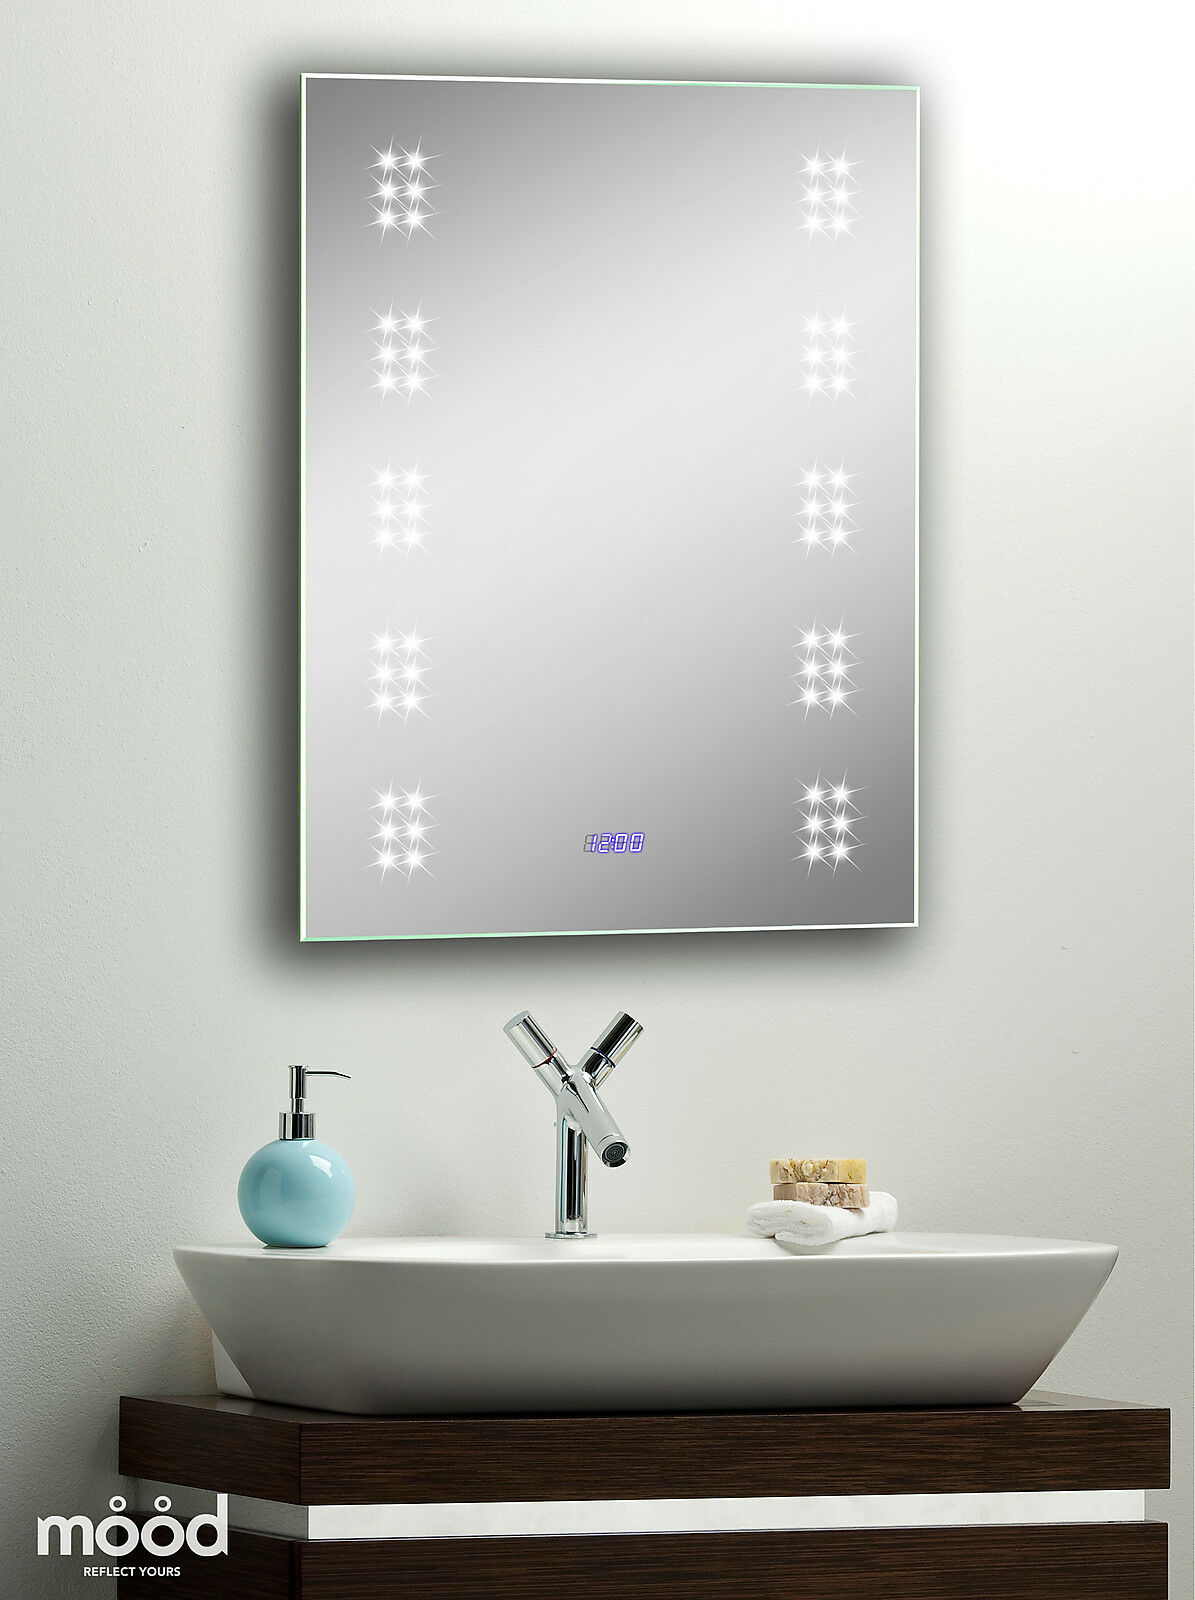 Bathroom Wall Mirror Led Illuminated With Clock Shaver Sensor Demister 70x50